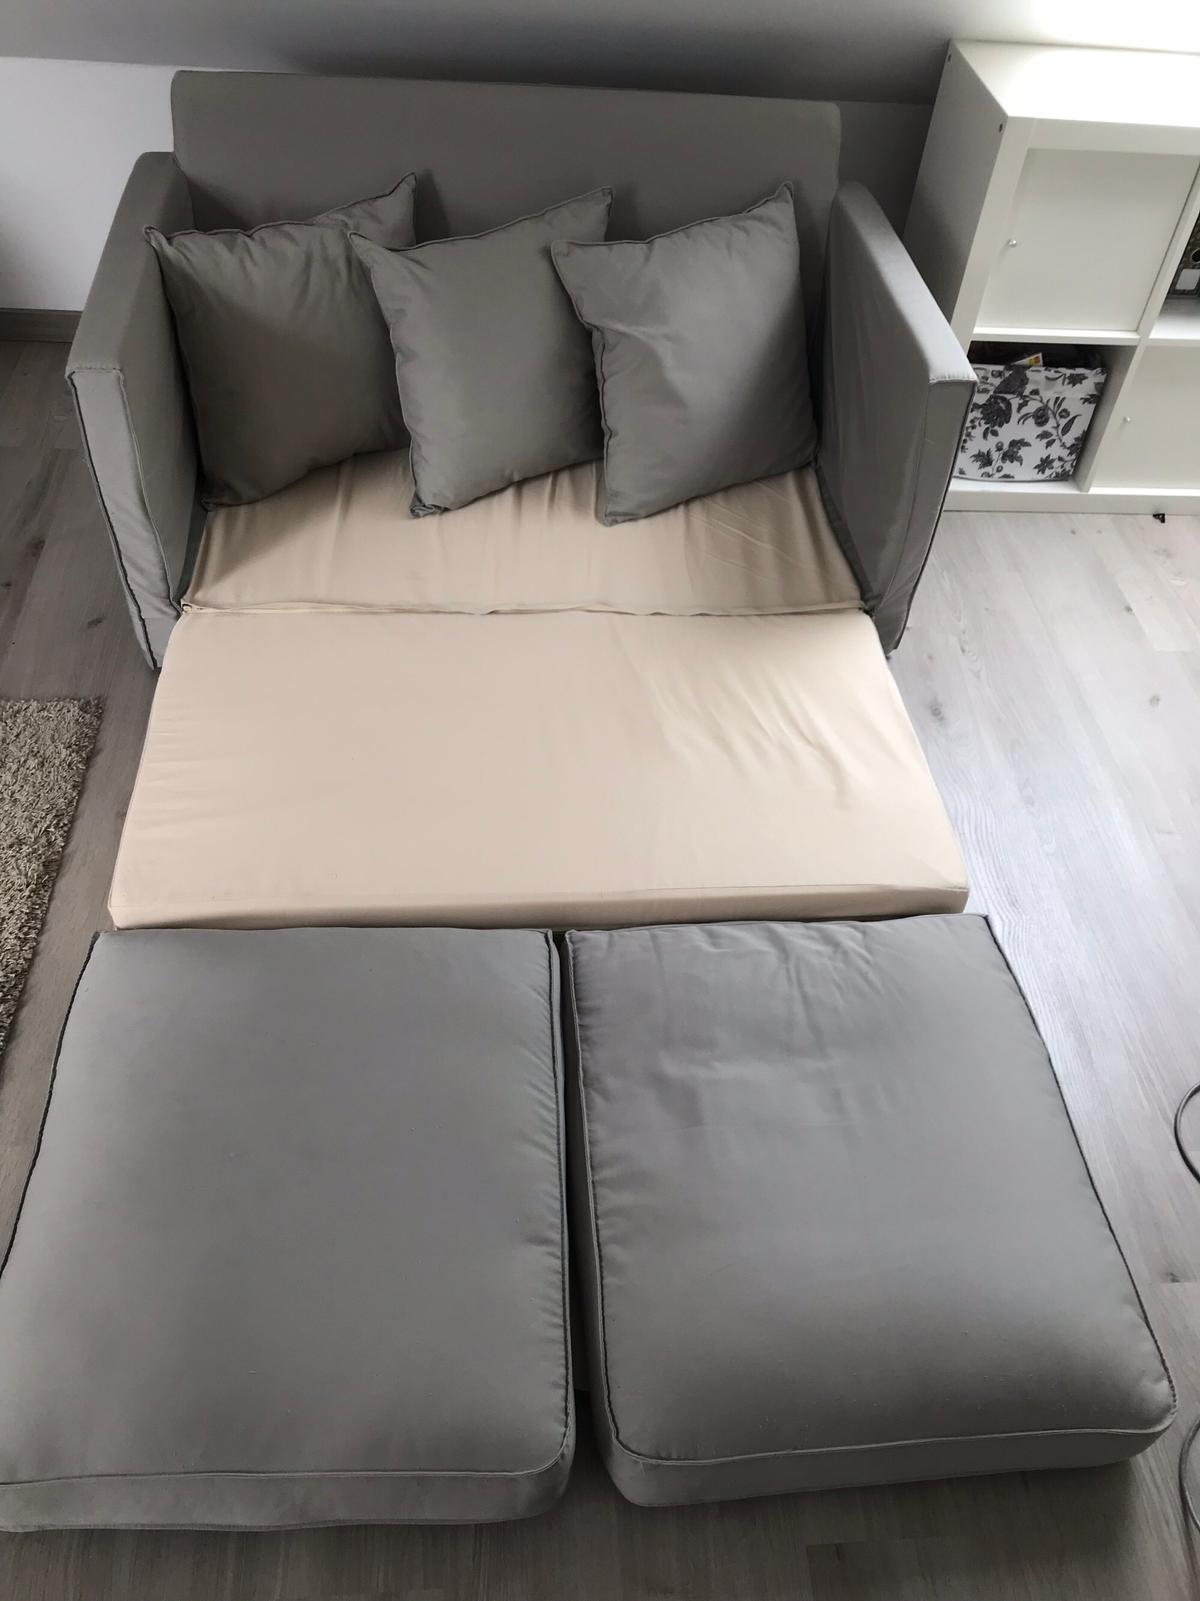 Sofa Schlafsofa Schlafcouch Couch Ikea In 63110 Rodgau For 60 00 For Sale Shpock